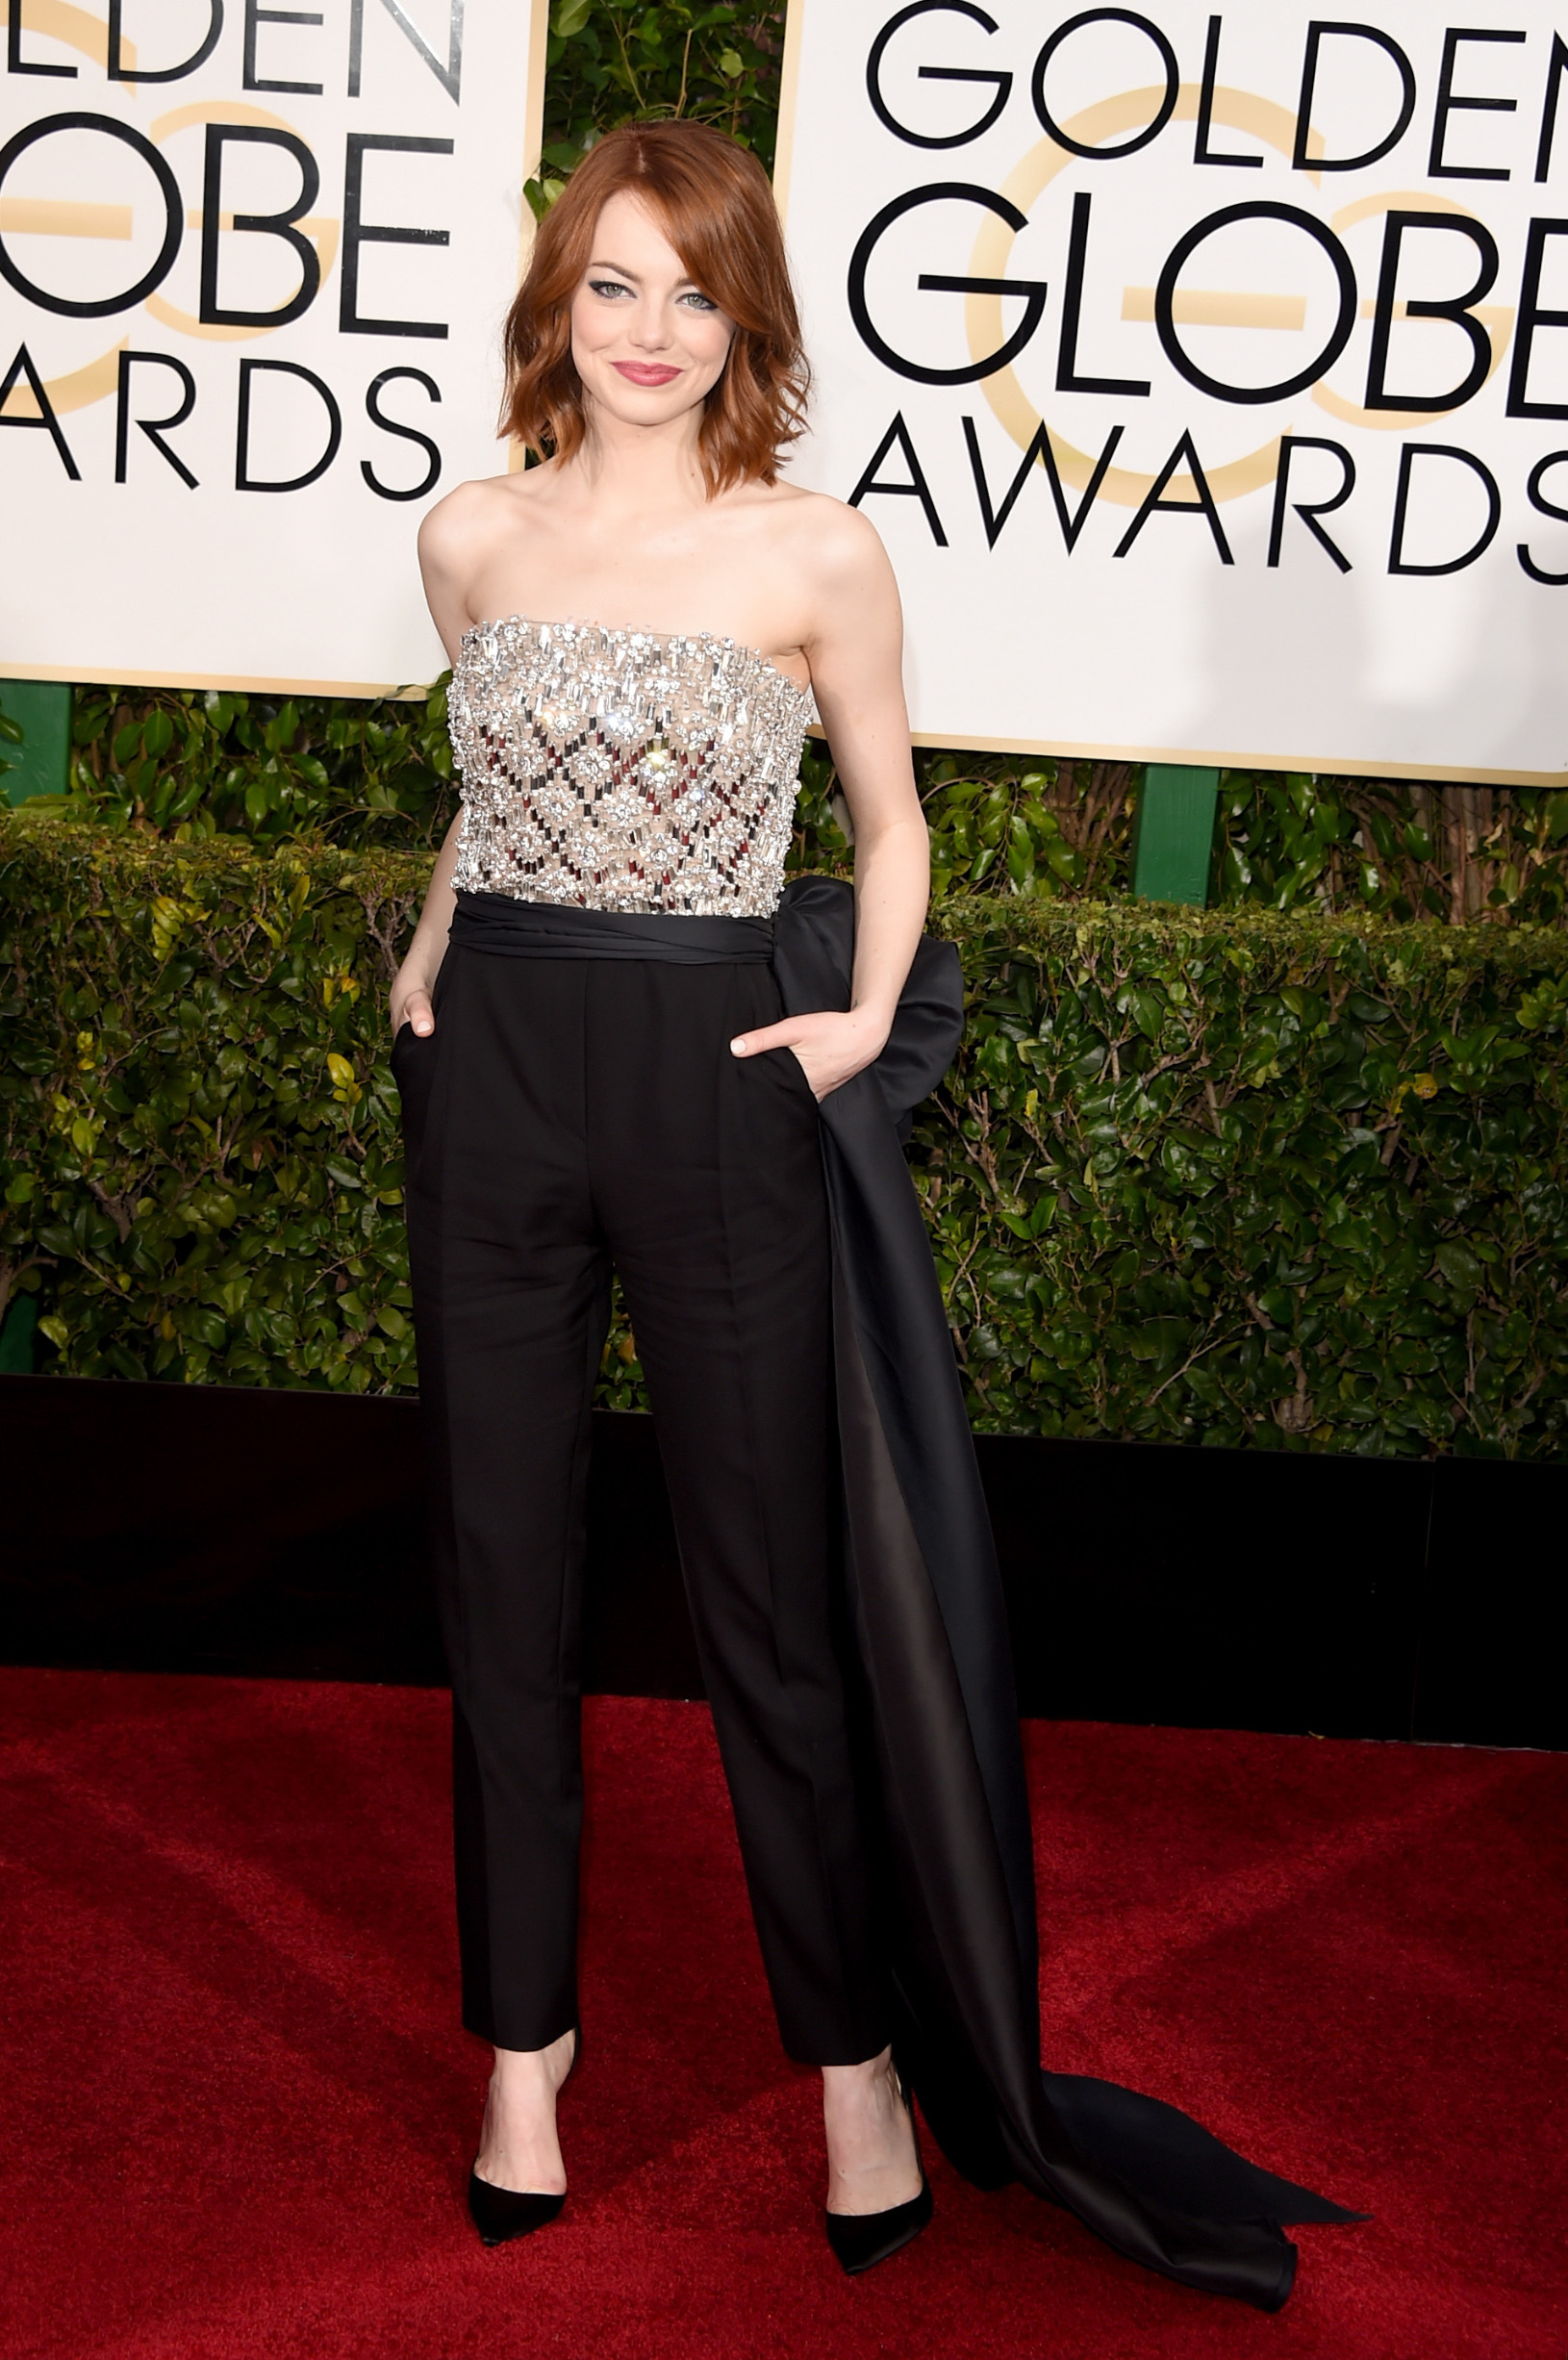 BEVERLY HILLS, CA - JANUARY 11: Actress Emma Stone attends the 72nd Annual Golden Globe Awards at The Beverly Hilton Hotel on January 11, 2015 in Beverly Hills, California.  (Photo by Jason Merritt/Getty Images)